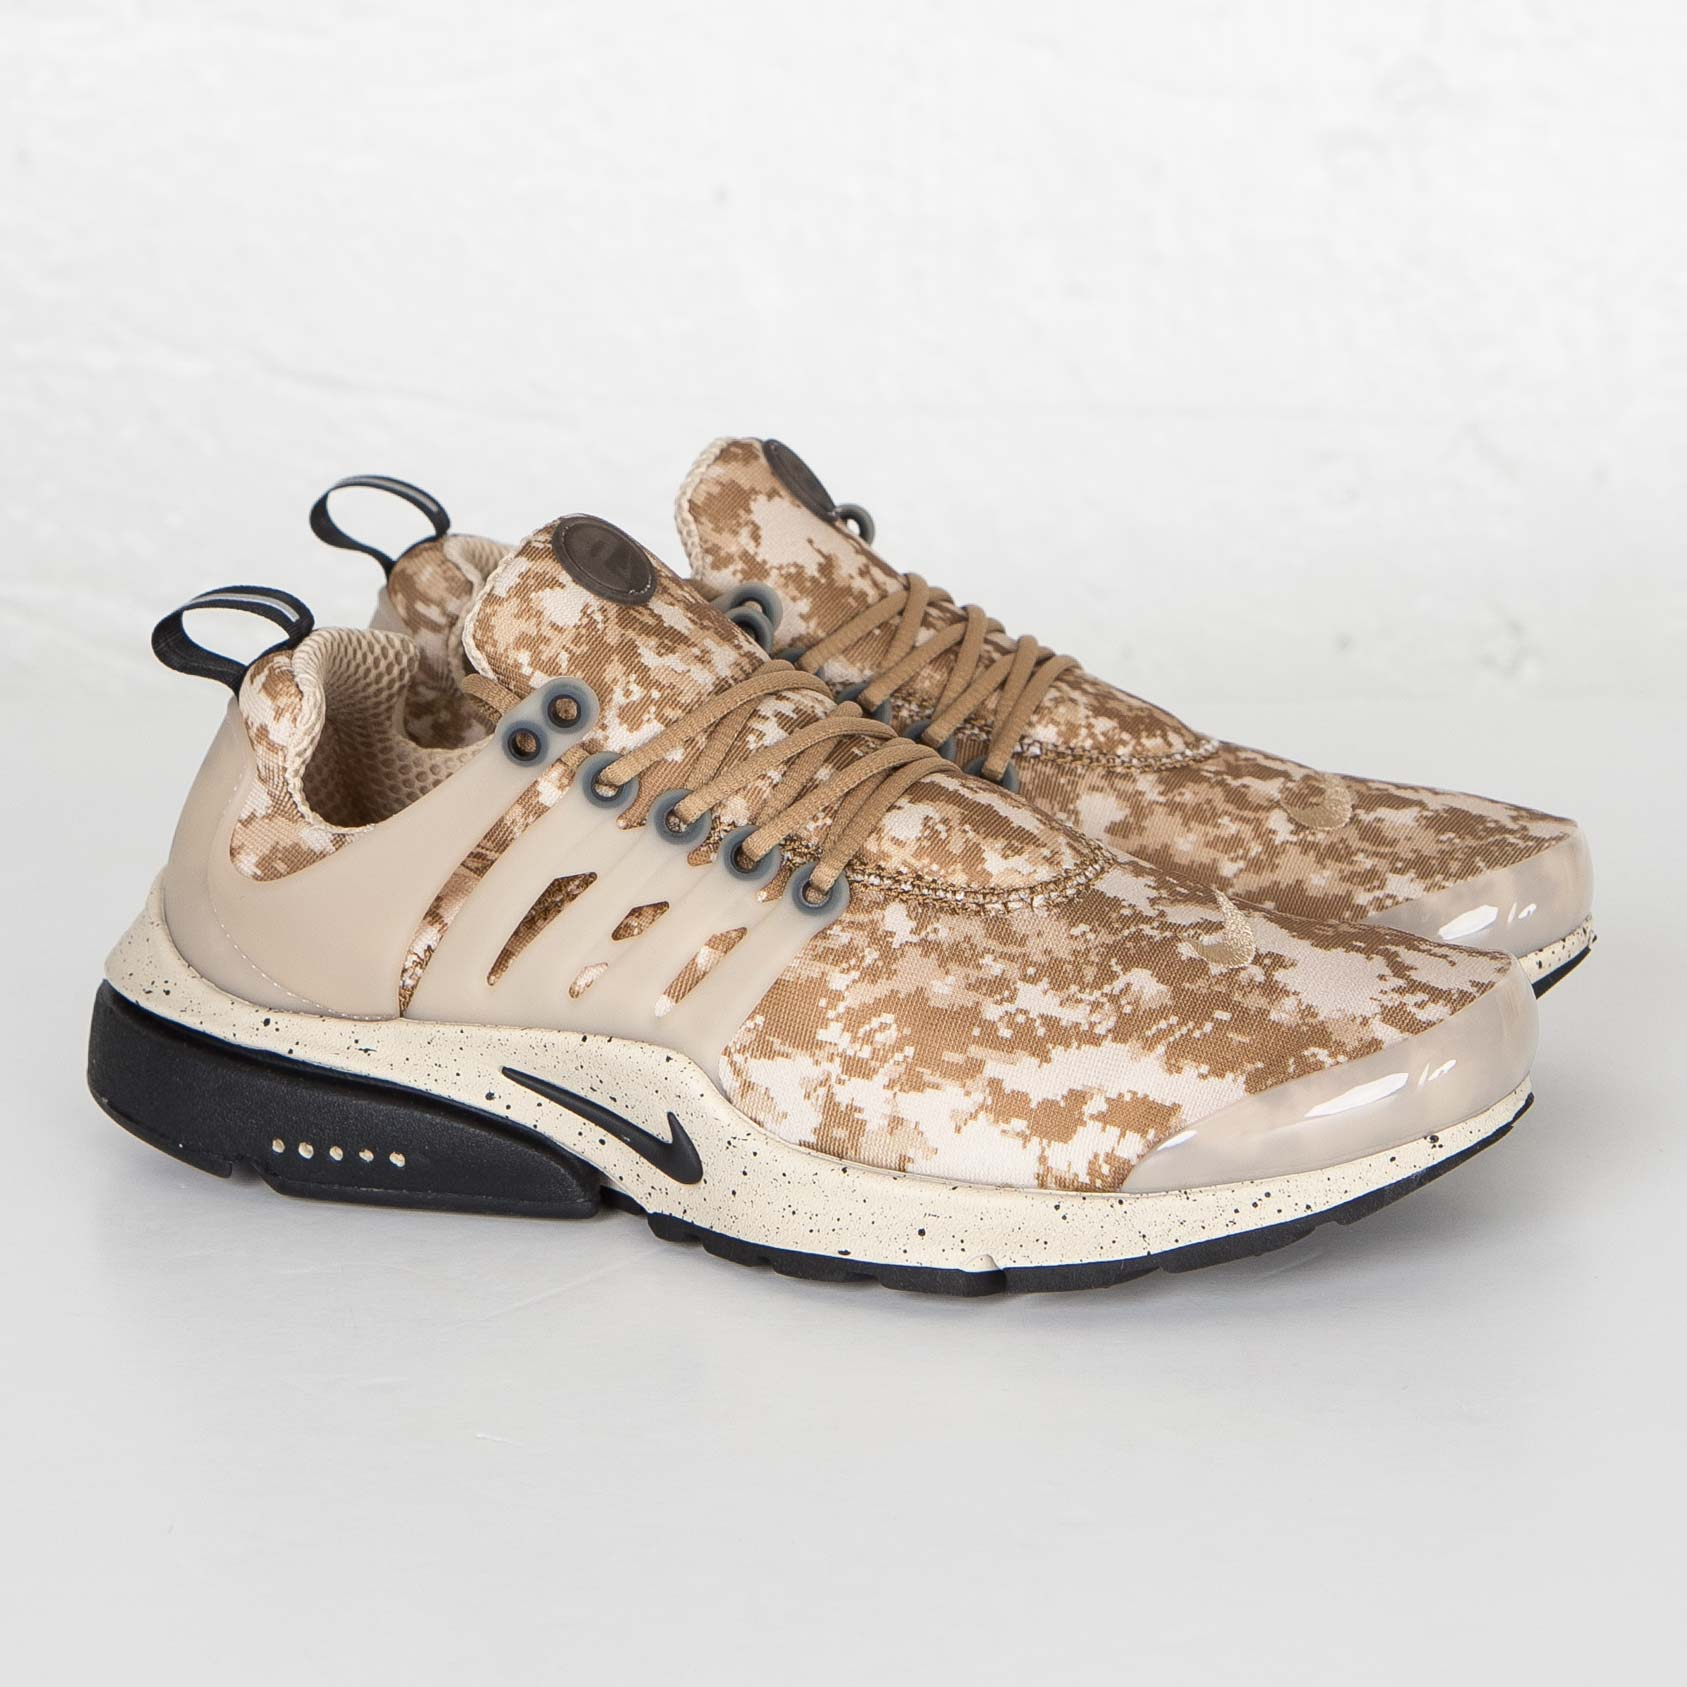 purchase cheap 48df0 a4585 Nike Air Presto GPX - 819521-200 - Sneakersnstuff | sneakers ...